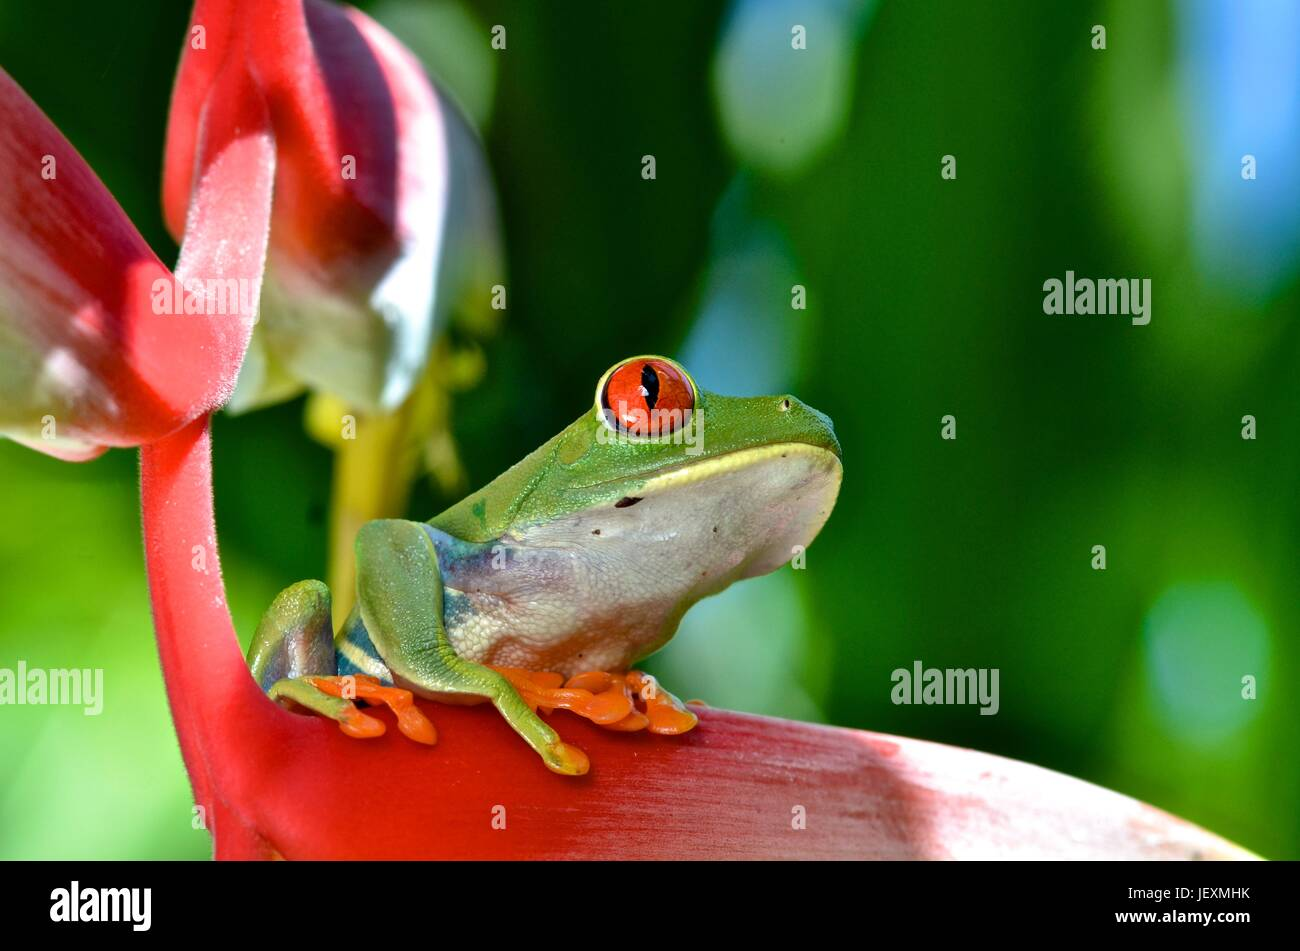 A red eyed tree frog, Agalychnis callidryas, rests on a plant at Tortuguero National Park. - Stock Image